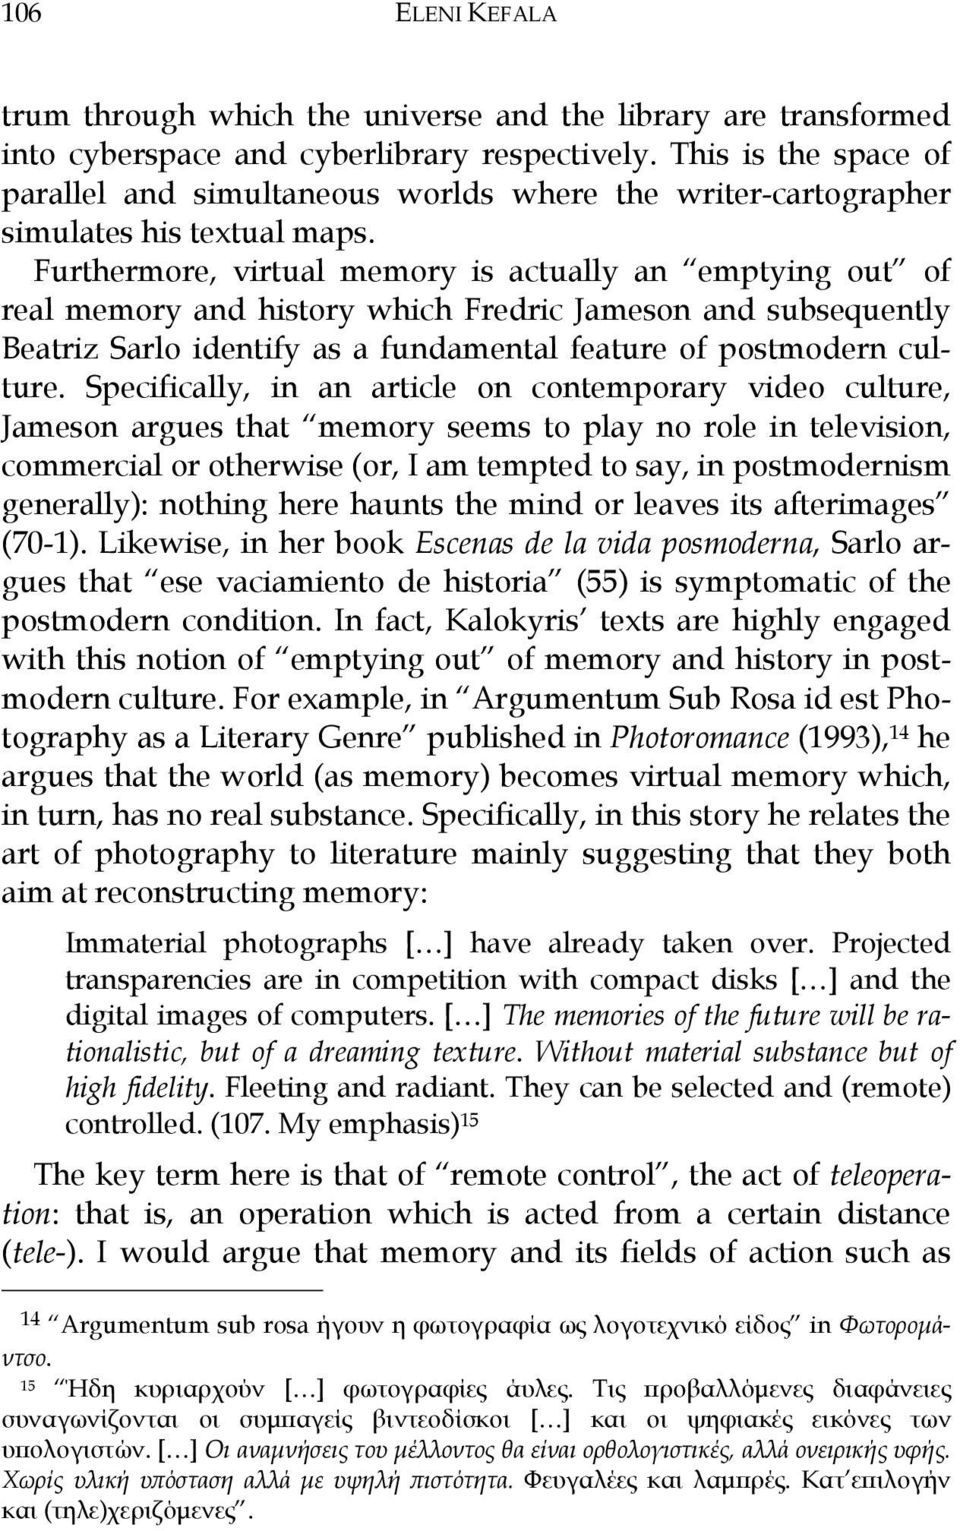 Furthermore, virtual memory is actually an emptying out of real memory and history which Fredric Jameson and subsequently Beatriz Sarlo identify as a fundamental feature of postmodern culture.